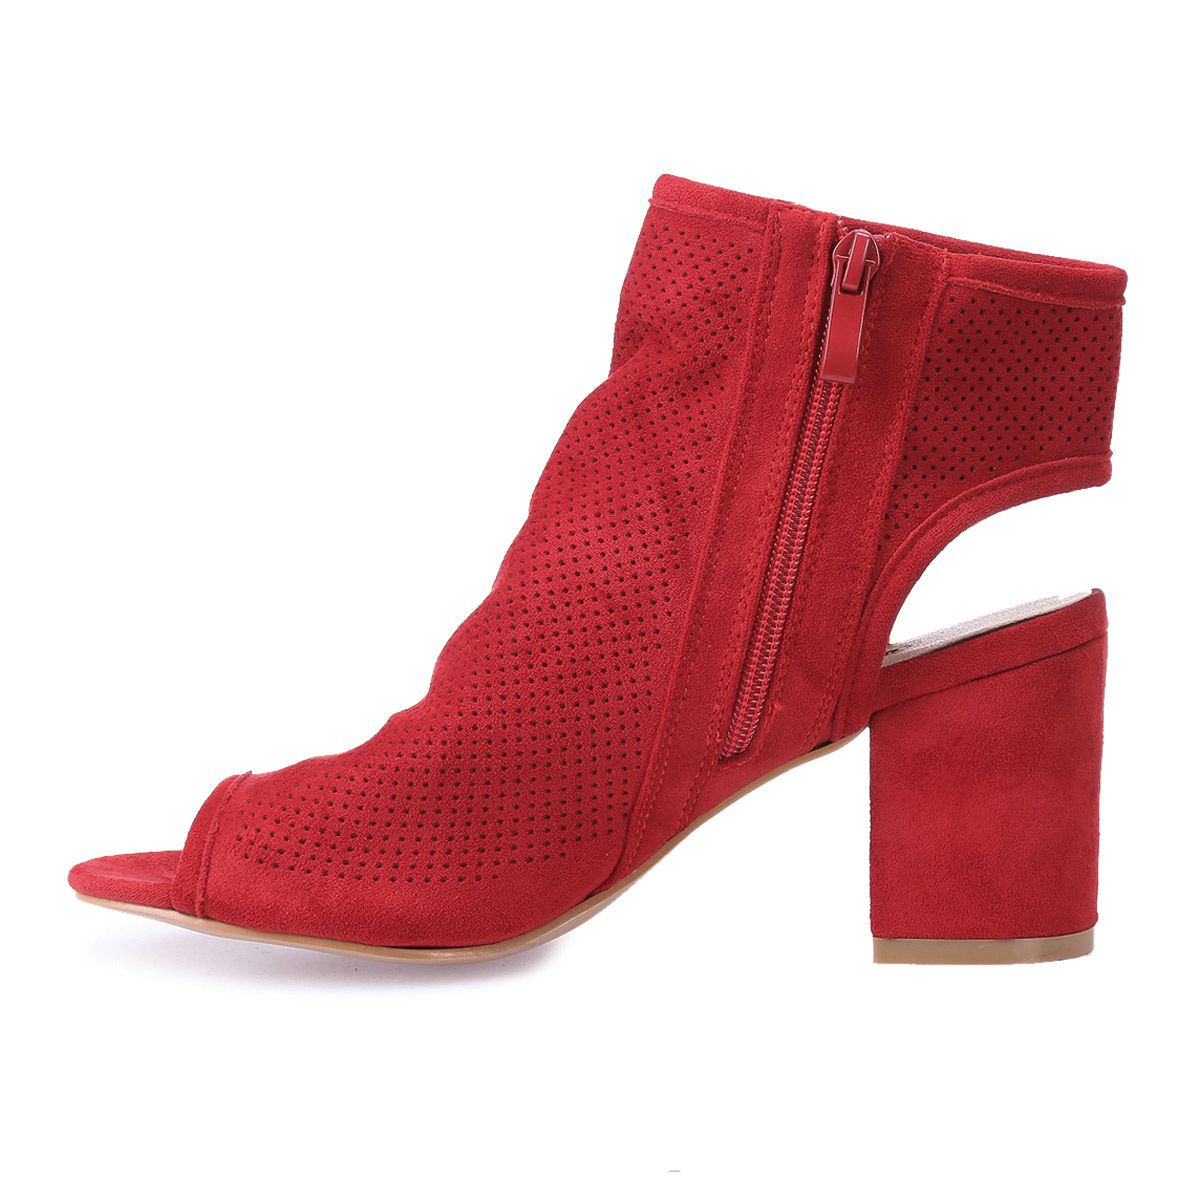 Bottines rouges peep toes en suédine